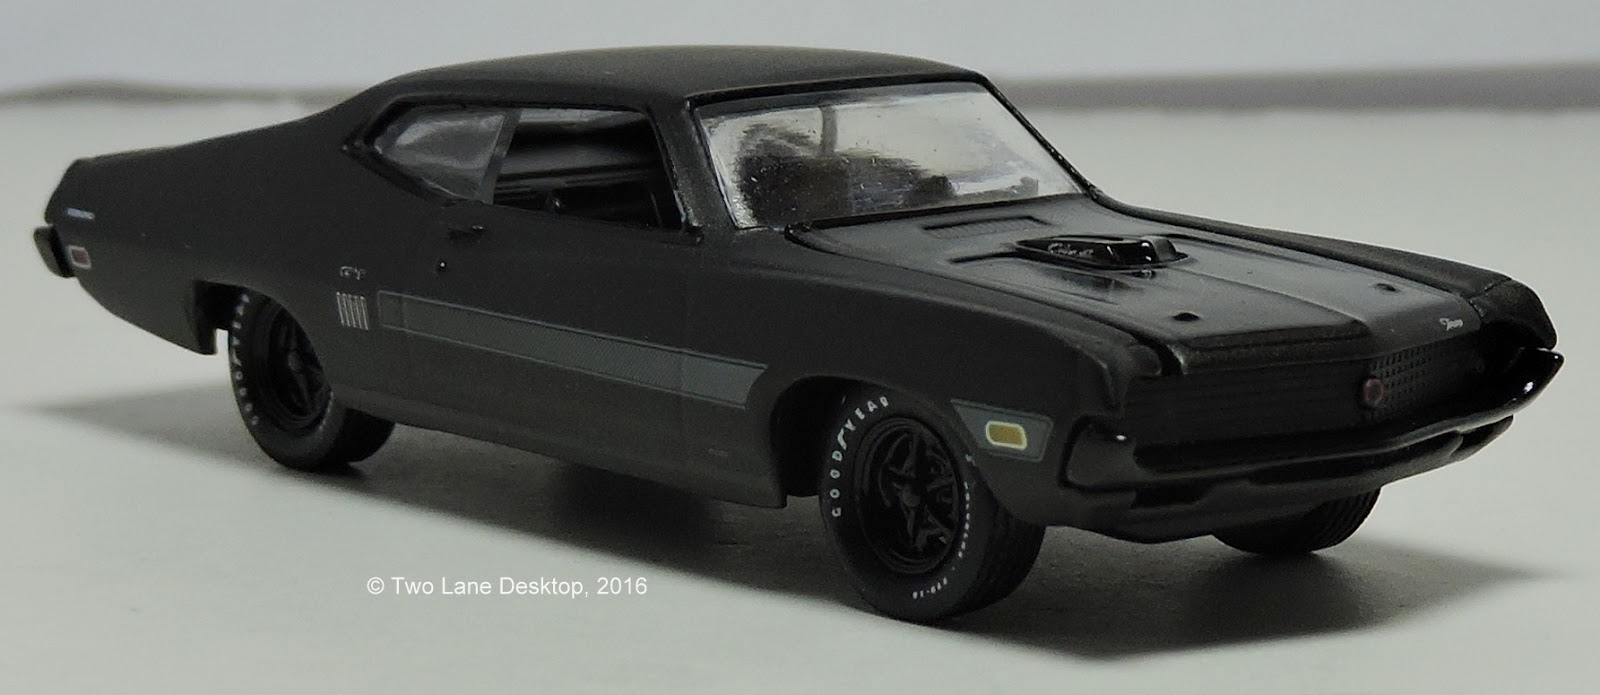 two lane desktop hot wheels 1976 ford gran torino and m2 machines 1970 ford torino gt. Black Bedroom Furniture Sets. Home Design Ideas